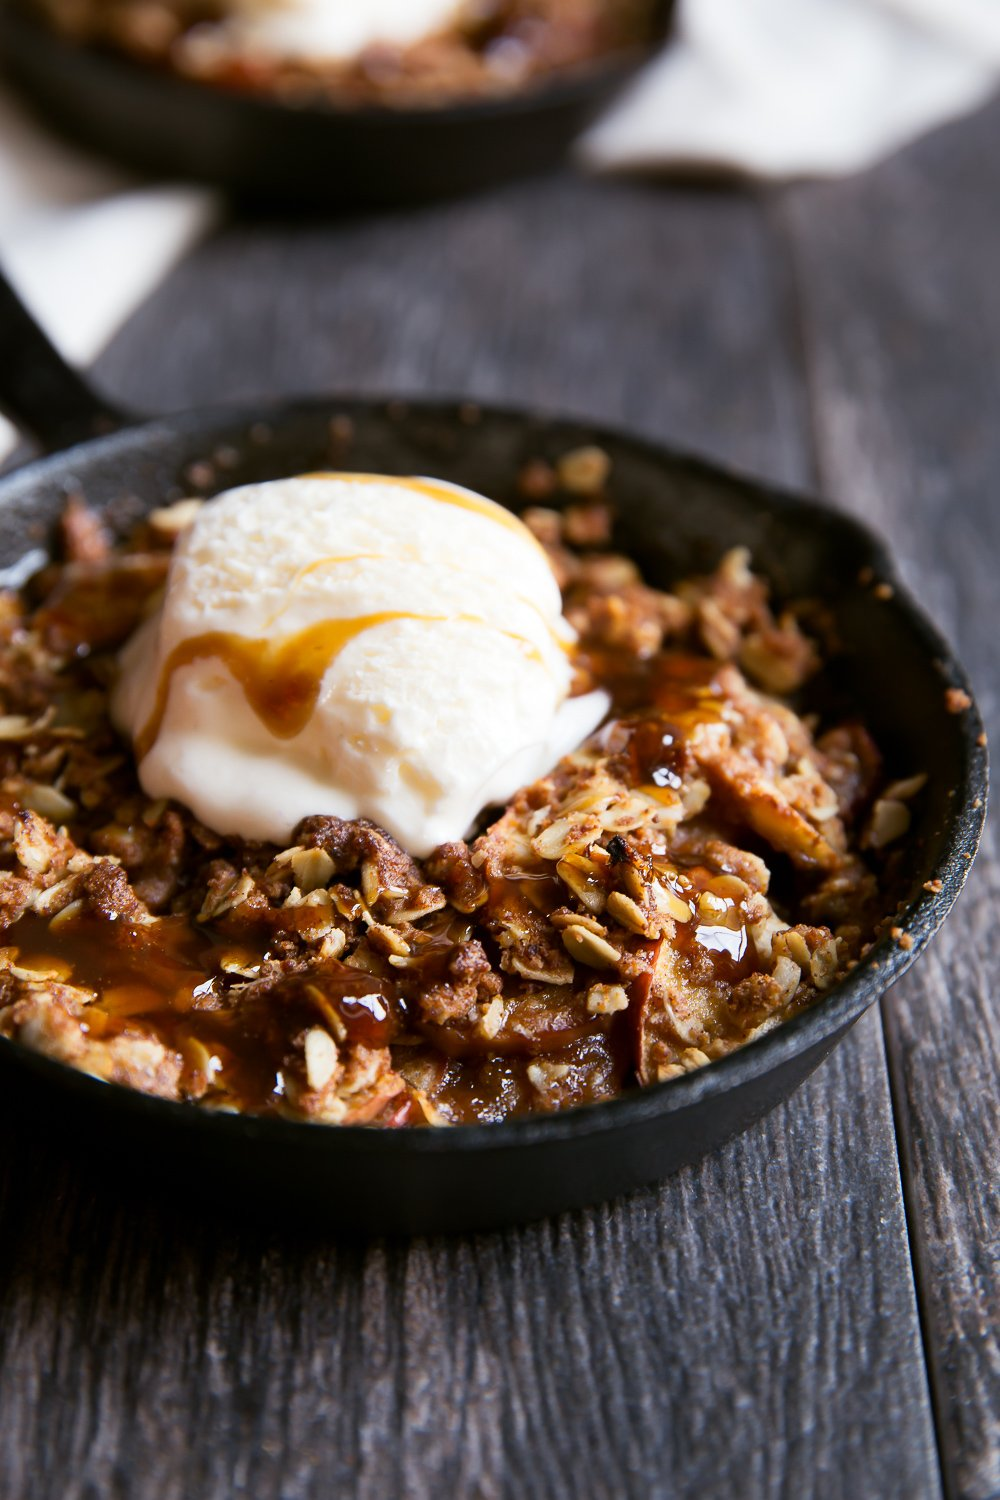 A delicious dairy free apple crisp made with SweeTango apples, maple syrup, coconut sugar, vanilla and a FABULOUS coconut milk caramel sauce. This recipe serves two people so it's perfect for date night.